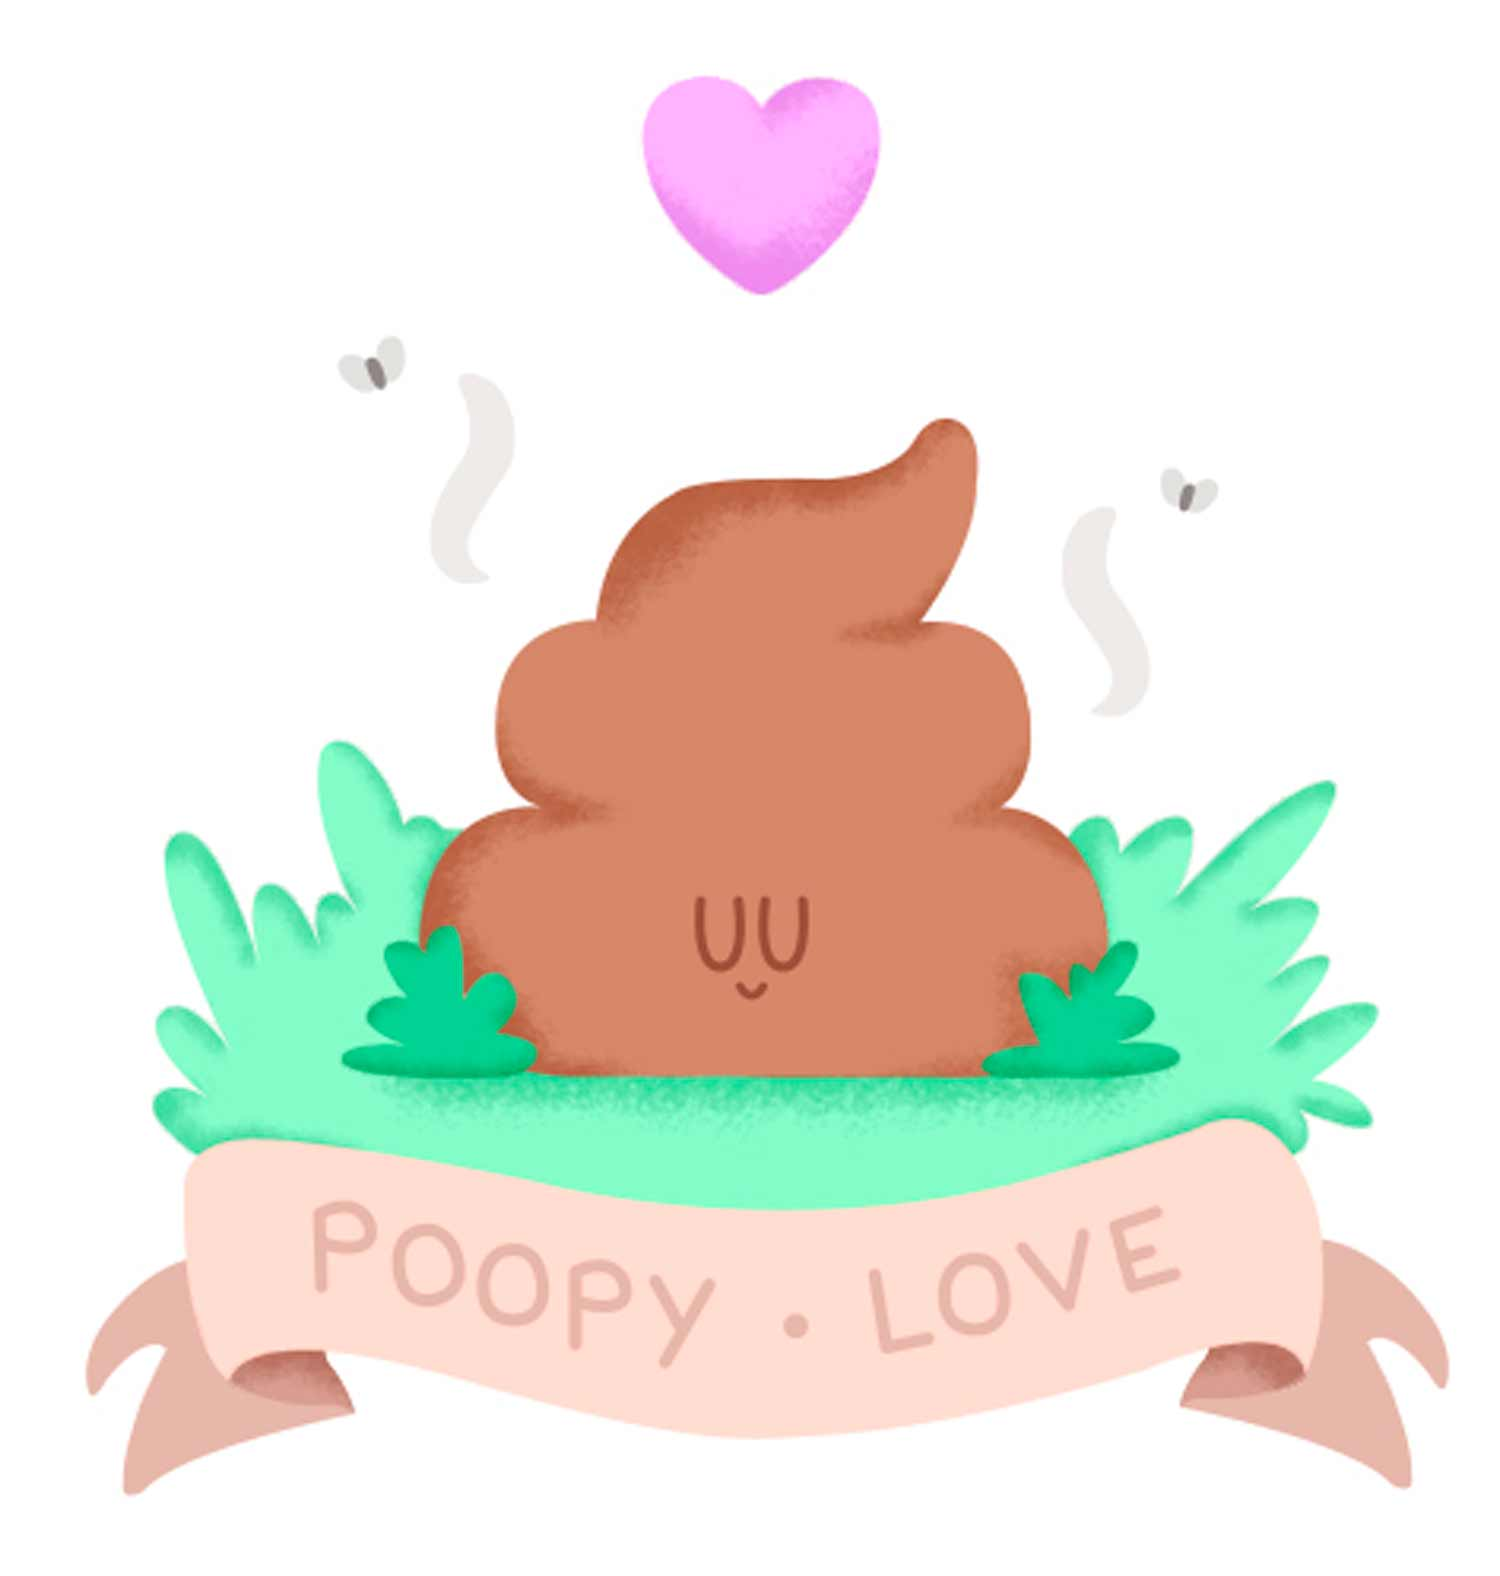 poopy-2